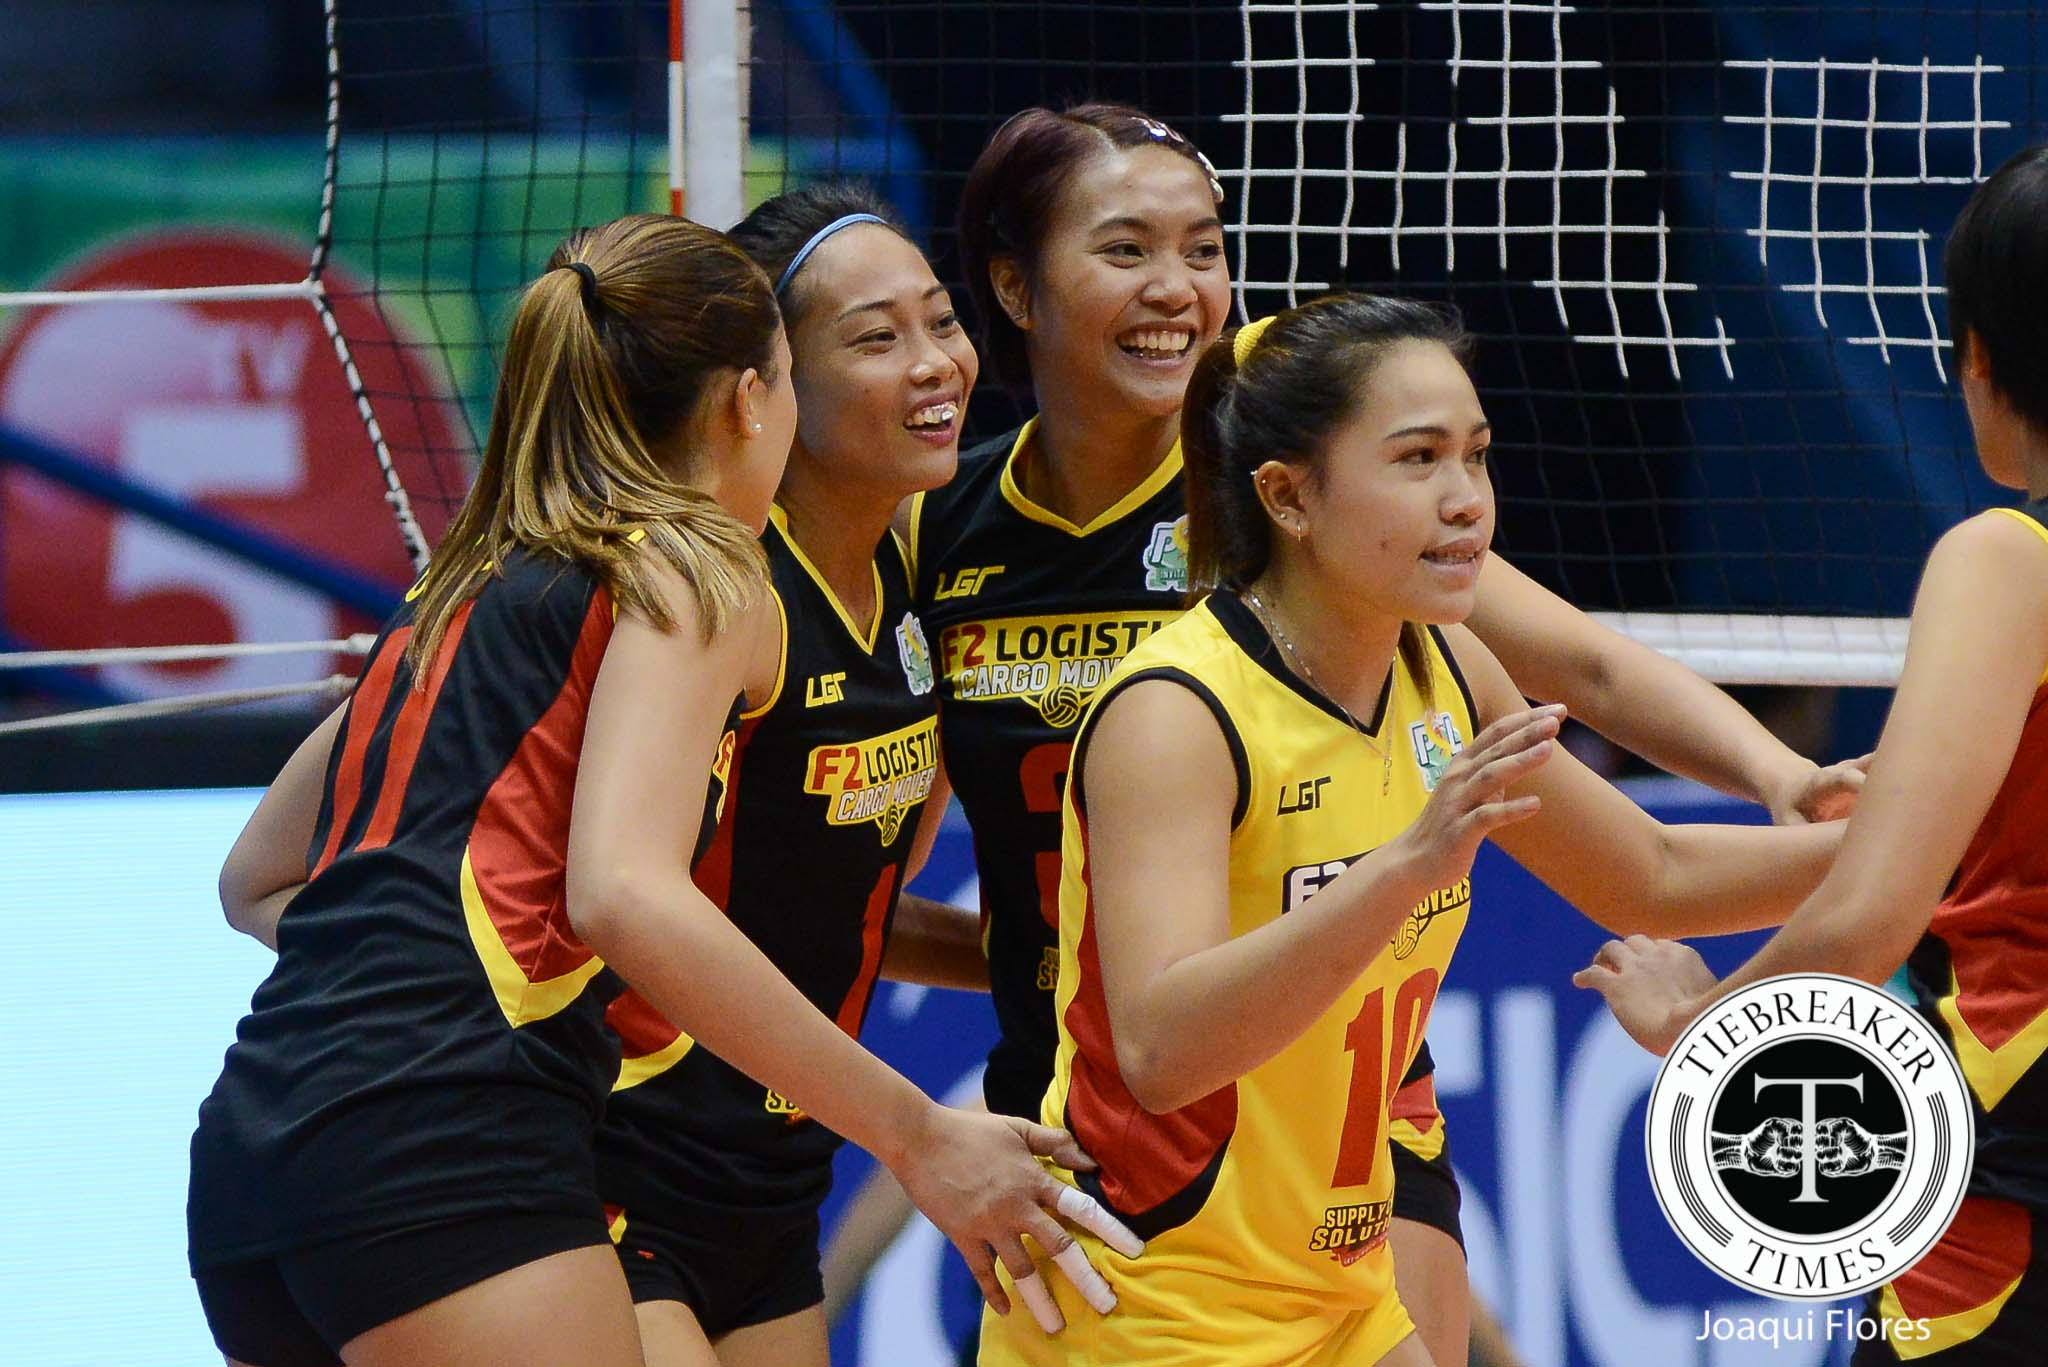 Philippine Sports News - Tiebreaker Times New team, same swagger for Aby Maraño News PSL Volleyball  F2 Logistics Cargo Movers Aby Marano 2016 PSL Invitational Cup